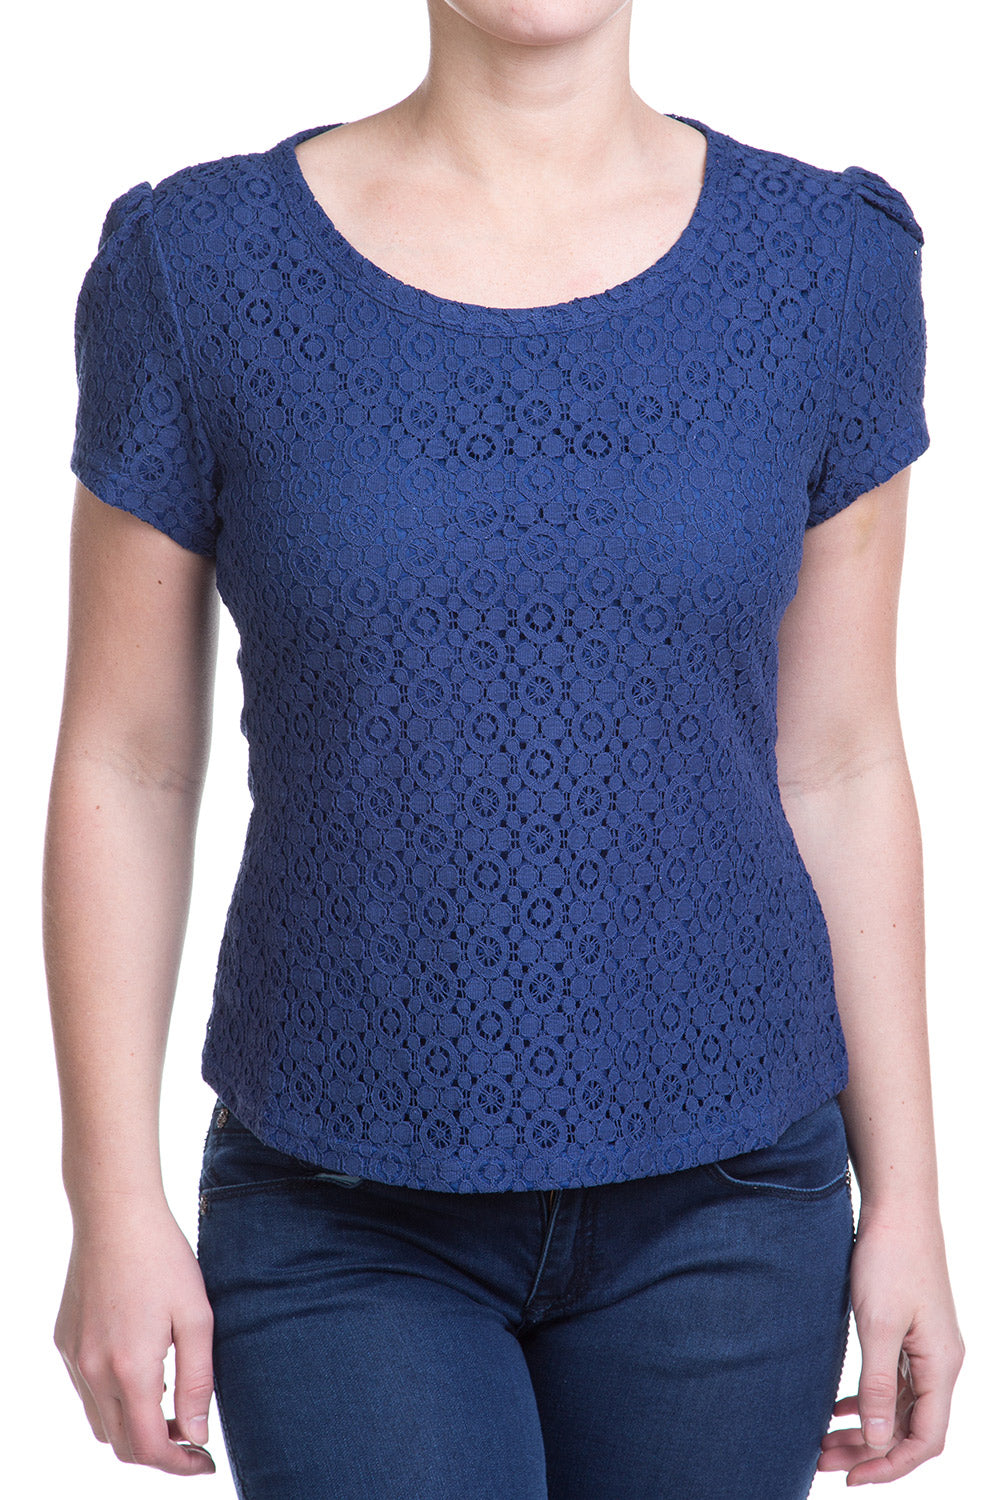 Type 1 Laced With Your Presence Top In Navy